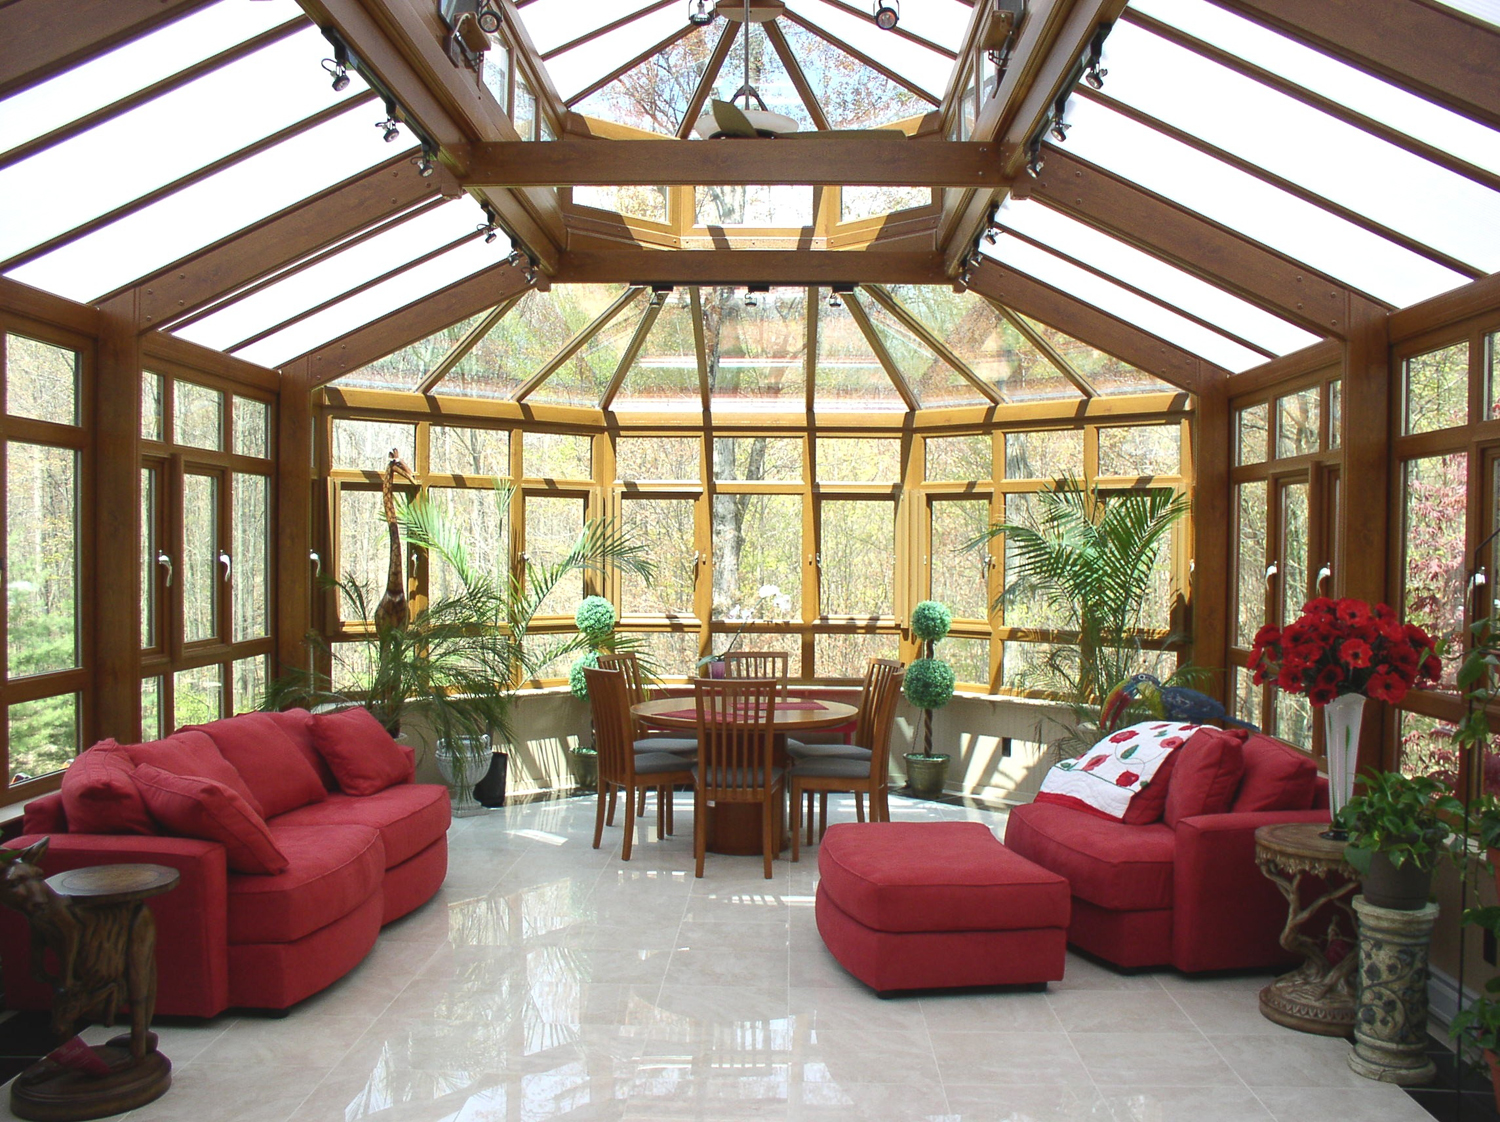 Sunroom design idea interior design ideas - Amazing image of sunroom interior design and decoration ...